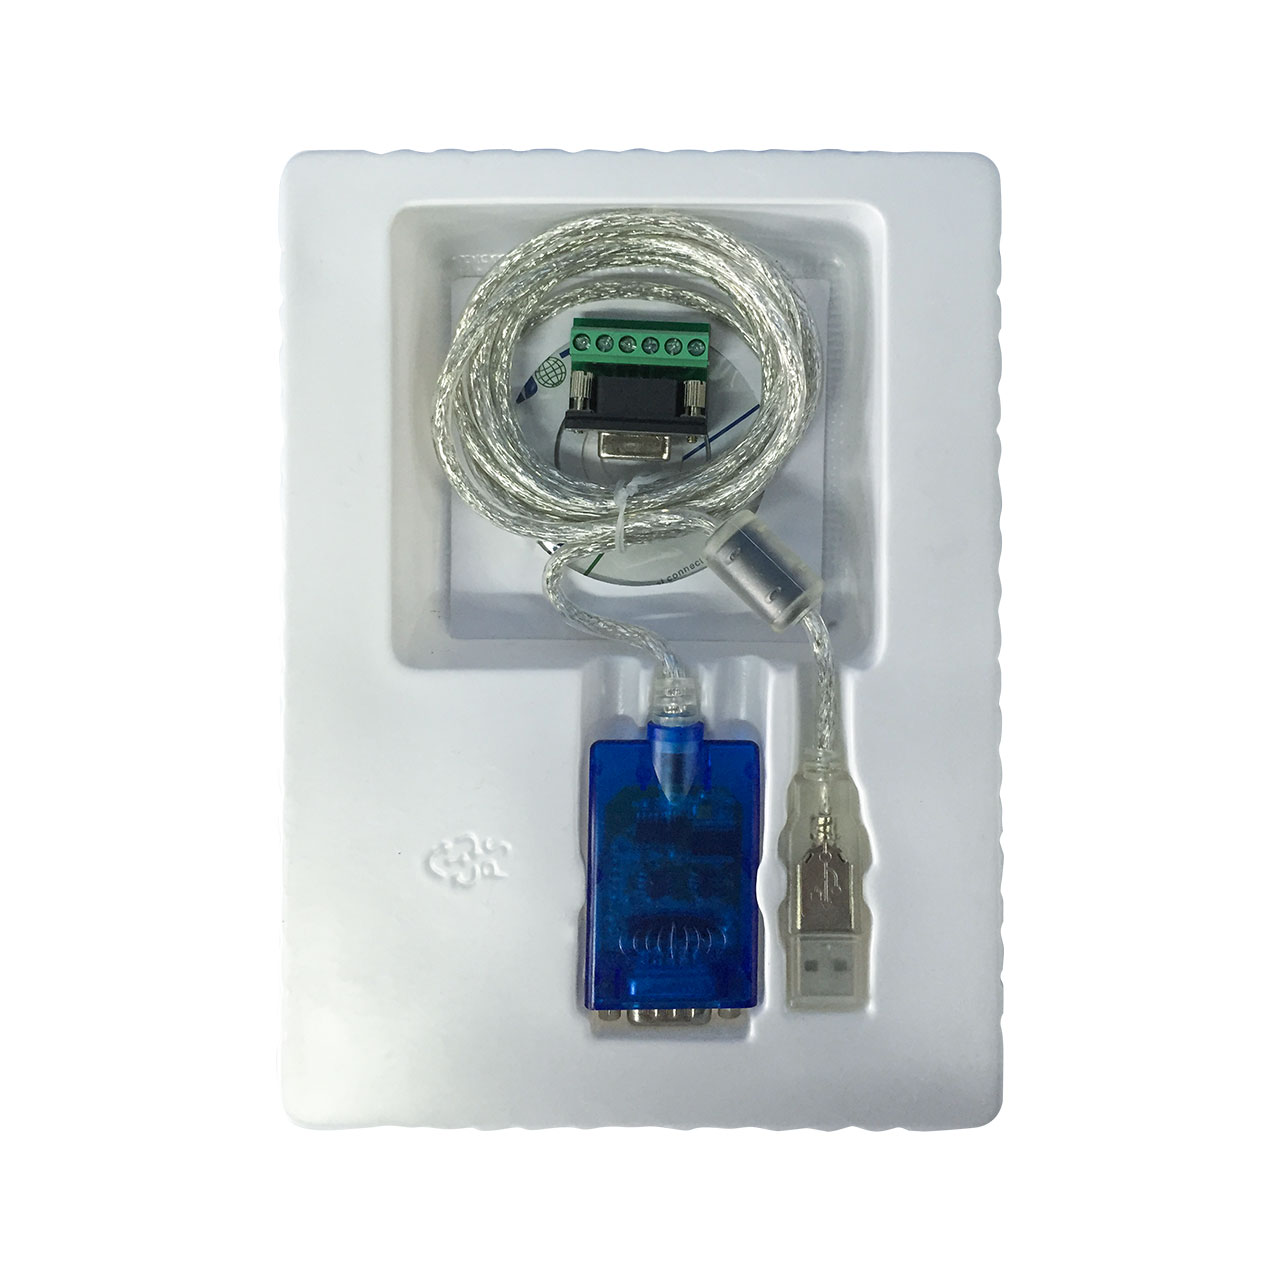 BMS_local-control-RS485-to-USB